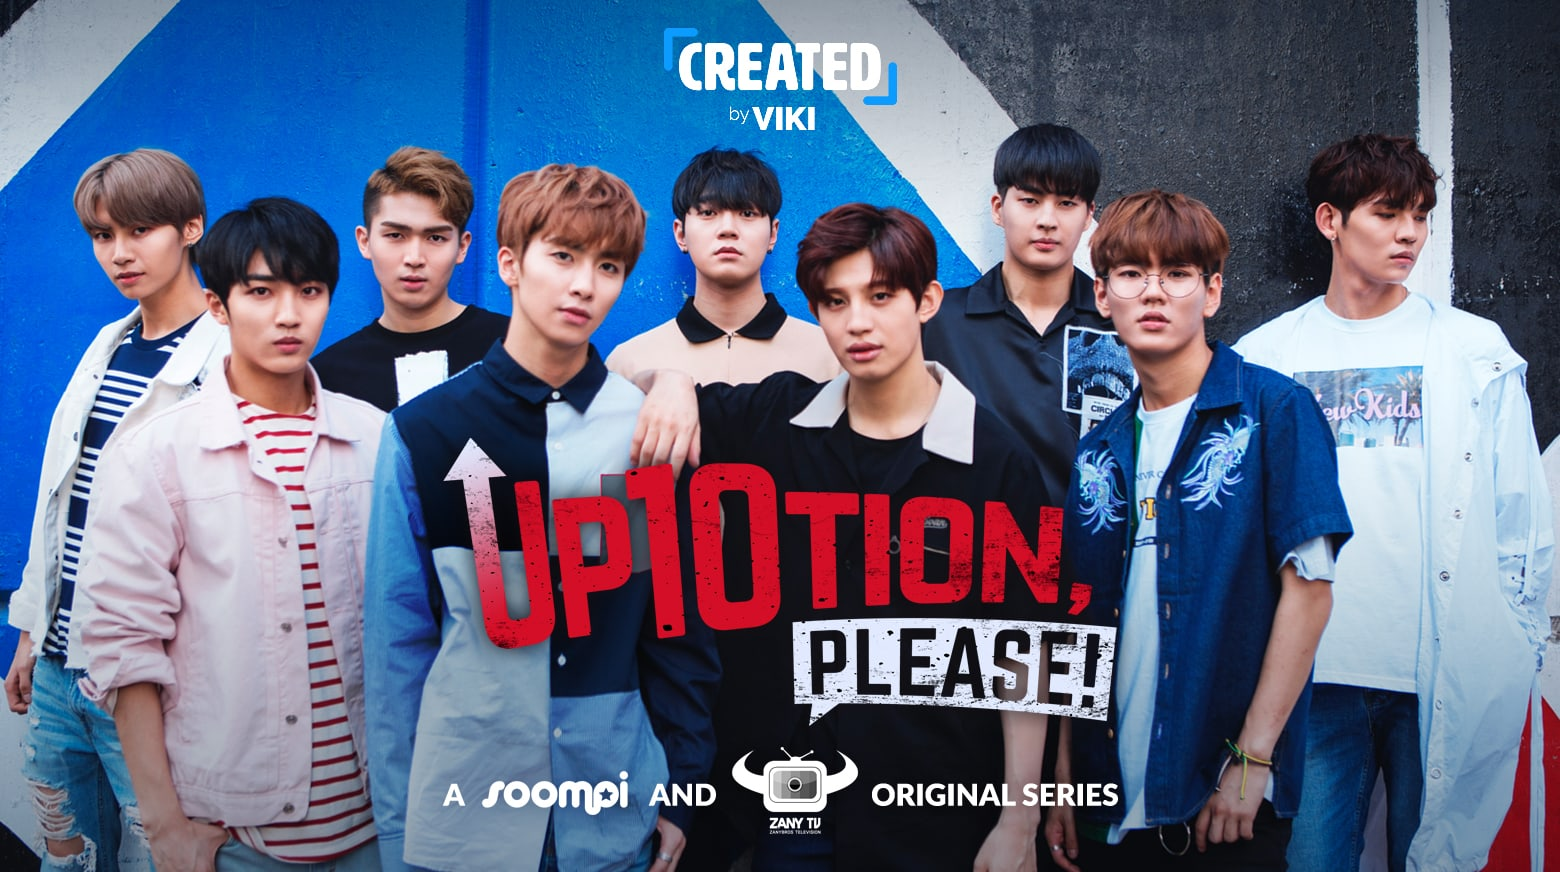 Watch: UP10TION, Please Episode 1: Discover A New K-Pop Group To Stan